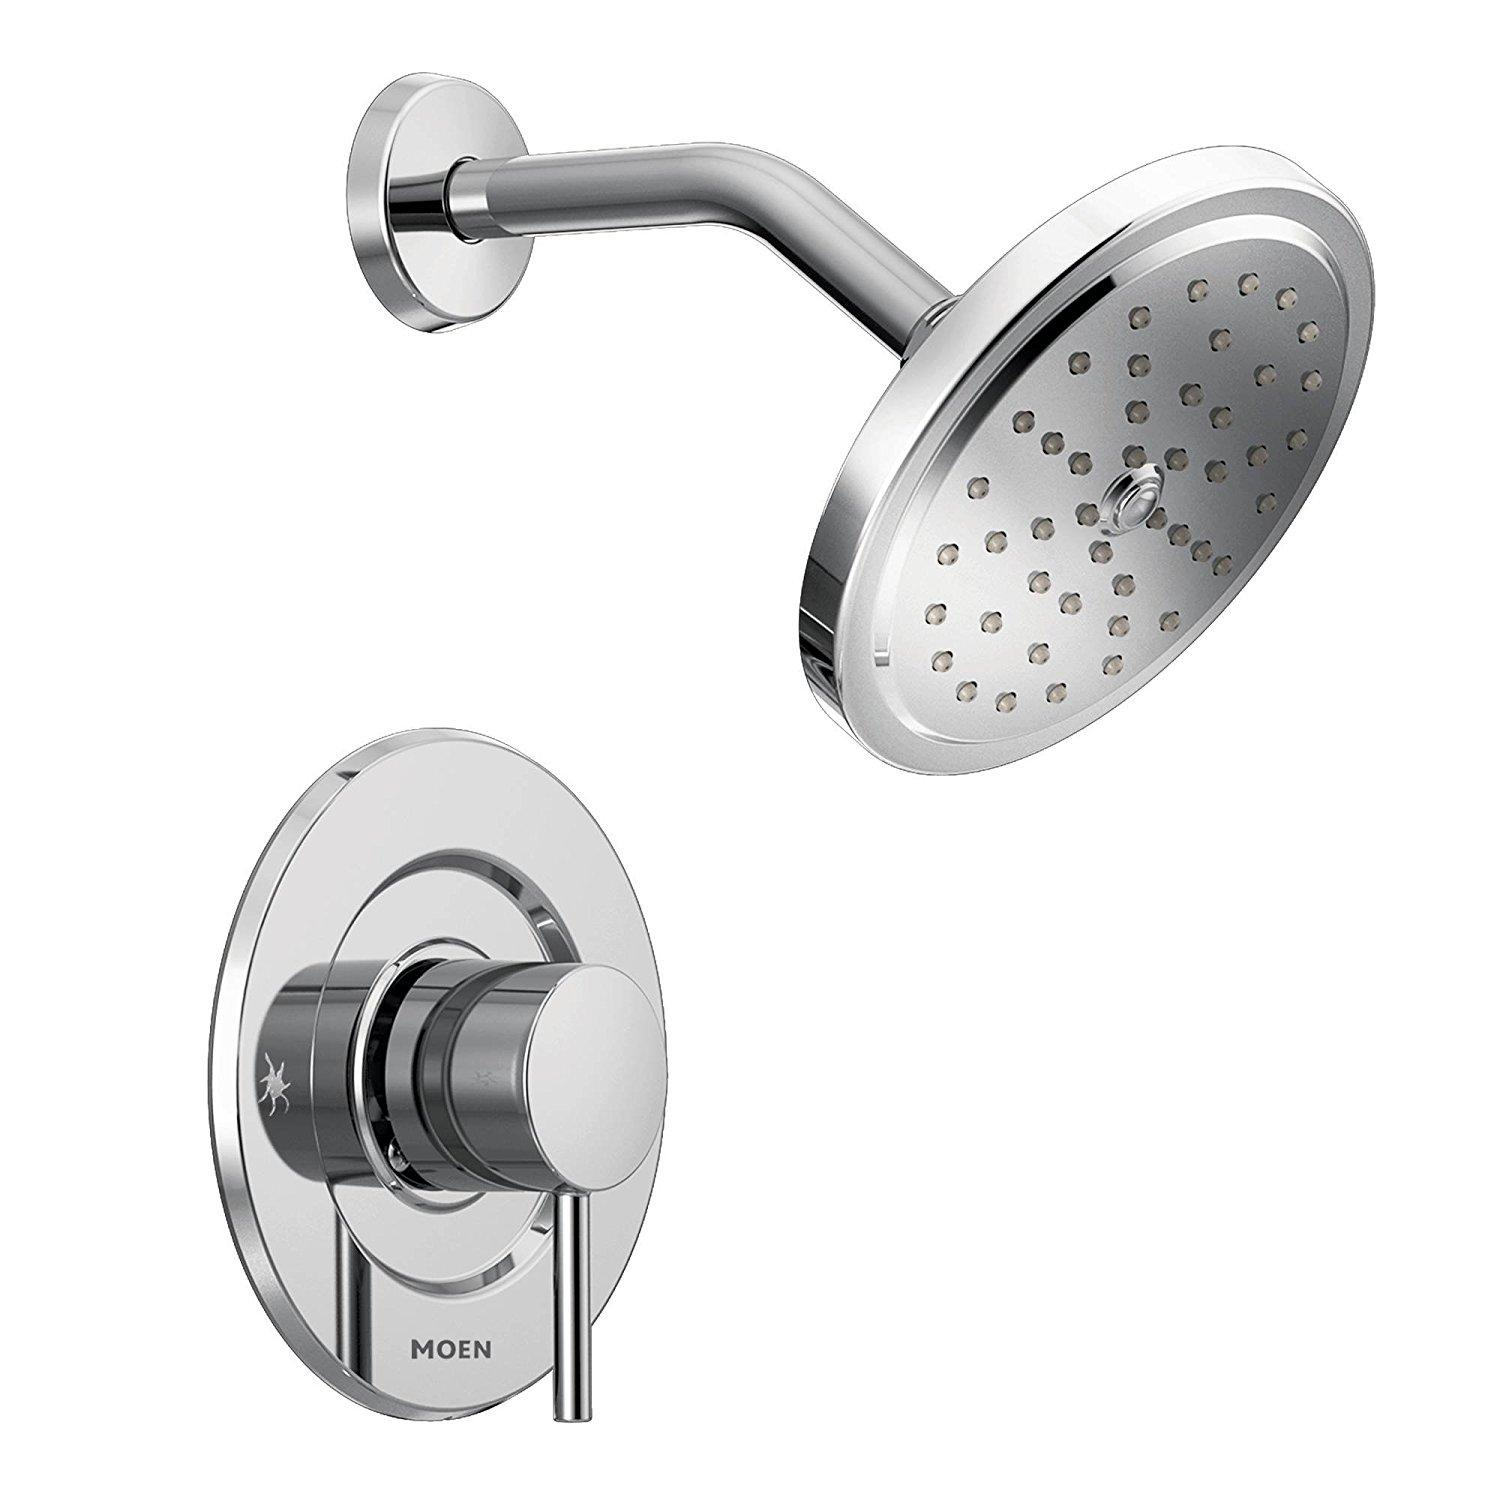 in p faucets en bath hole low sink bathroom canada chrome with genta the moen faucet depot shower home lever arc handle single categories